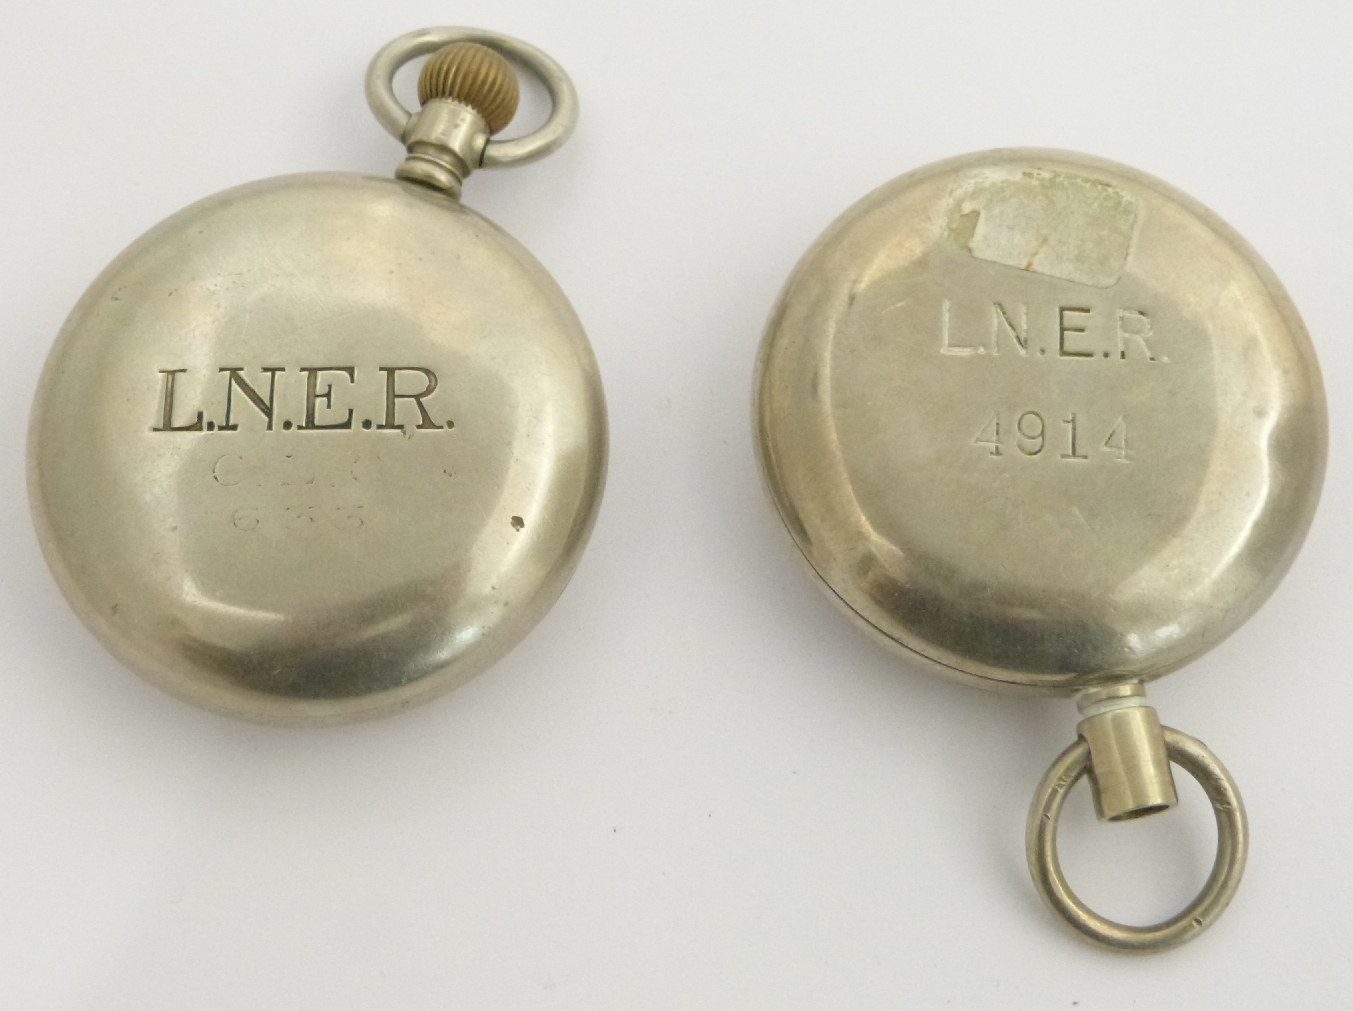 Lot 48 - Two London North Eastern Railway keyless winding open faced pocket watches, one Tissot, both with